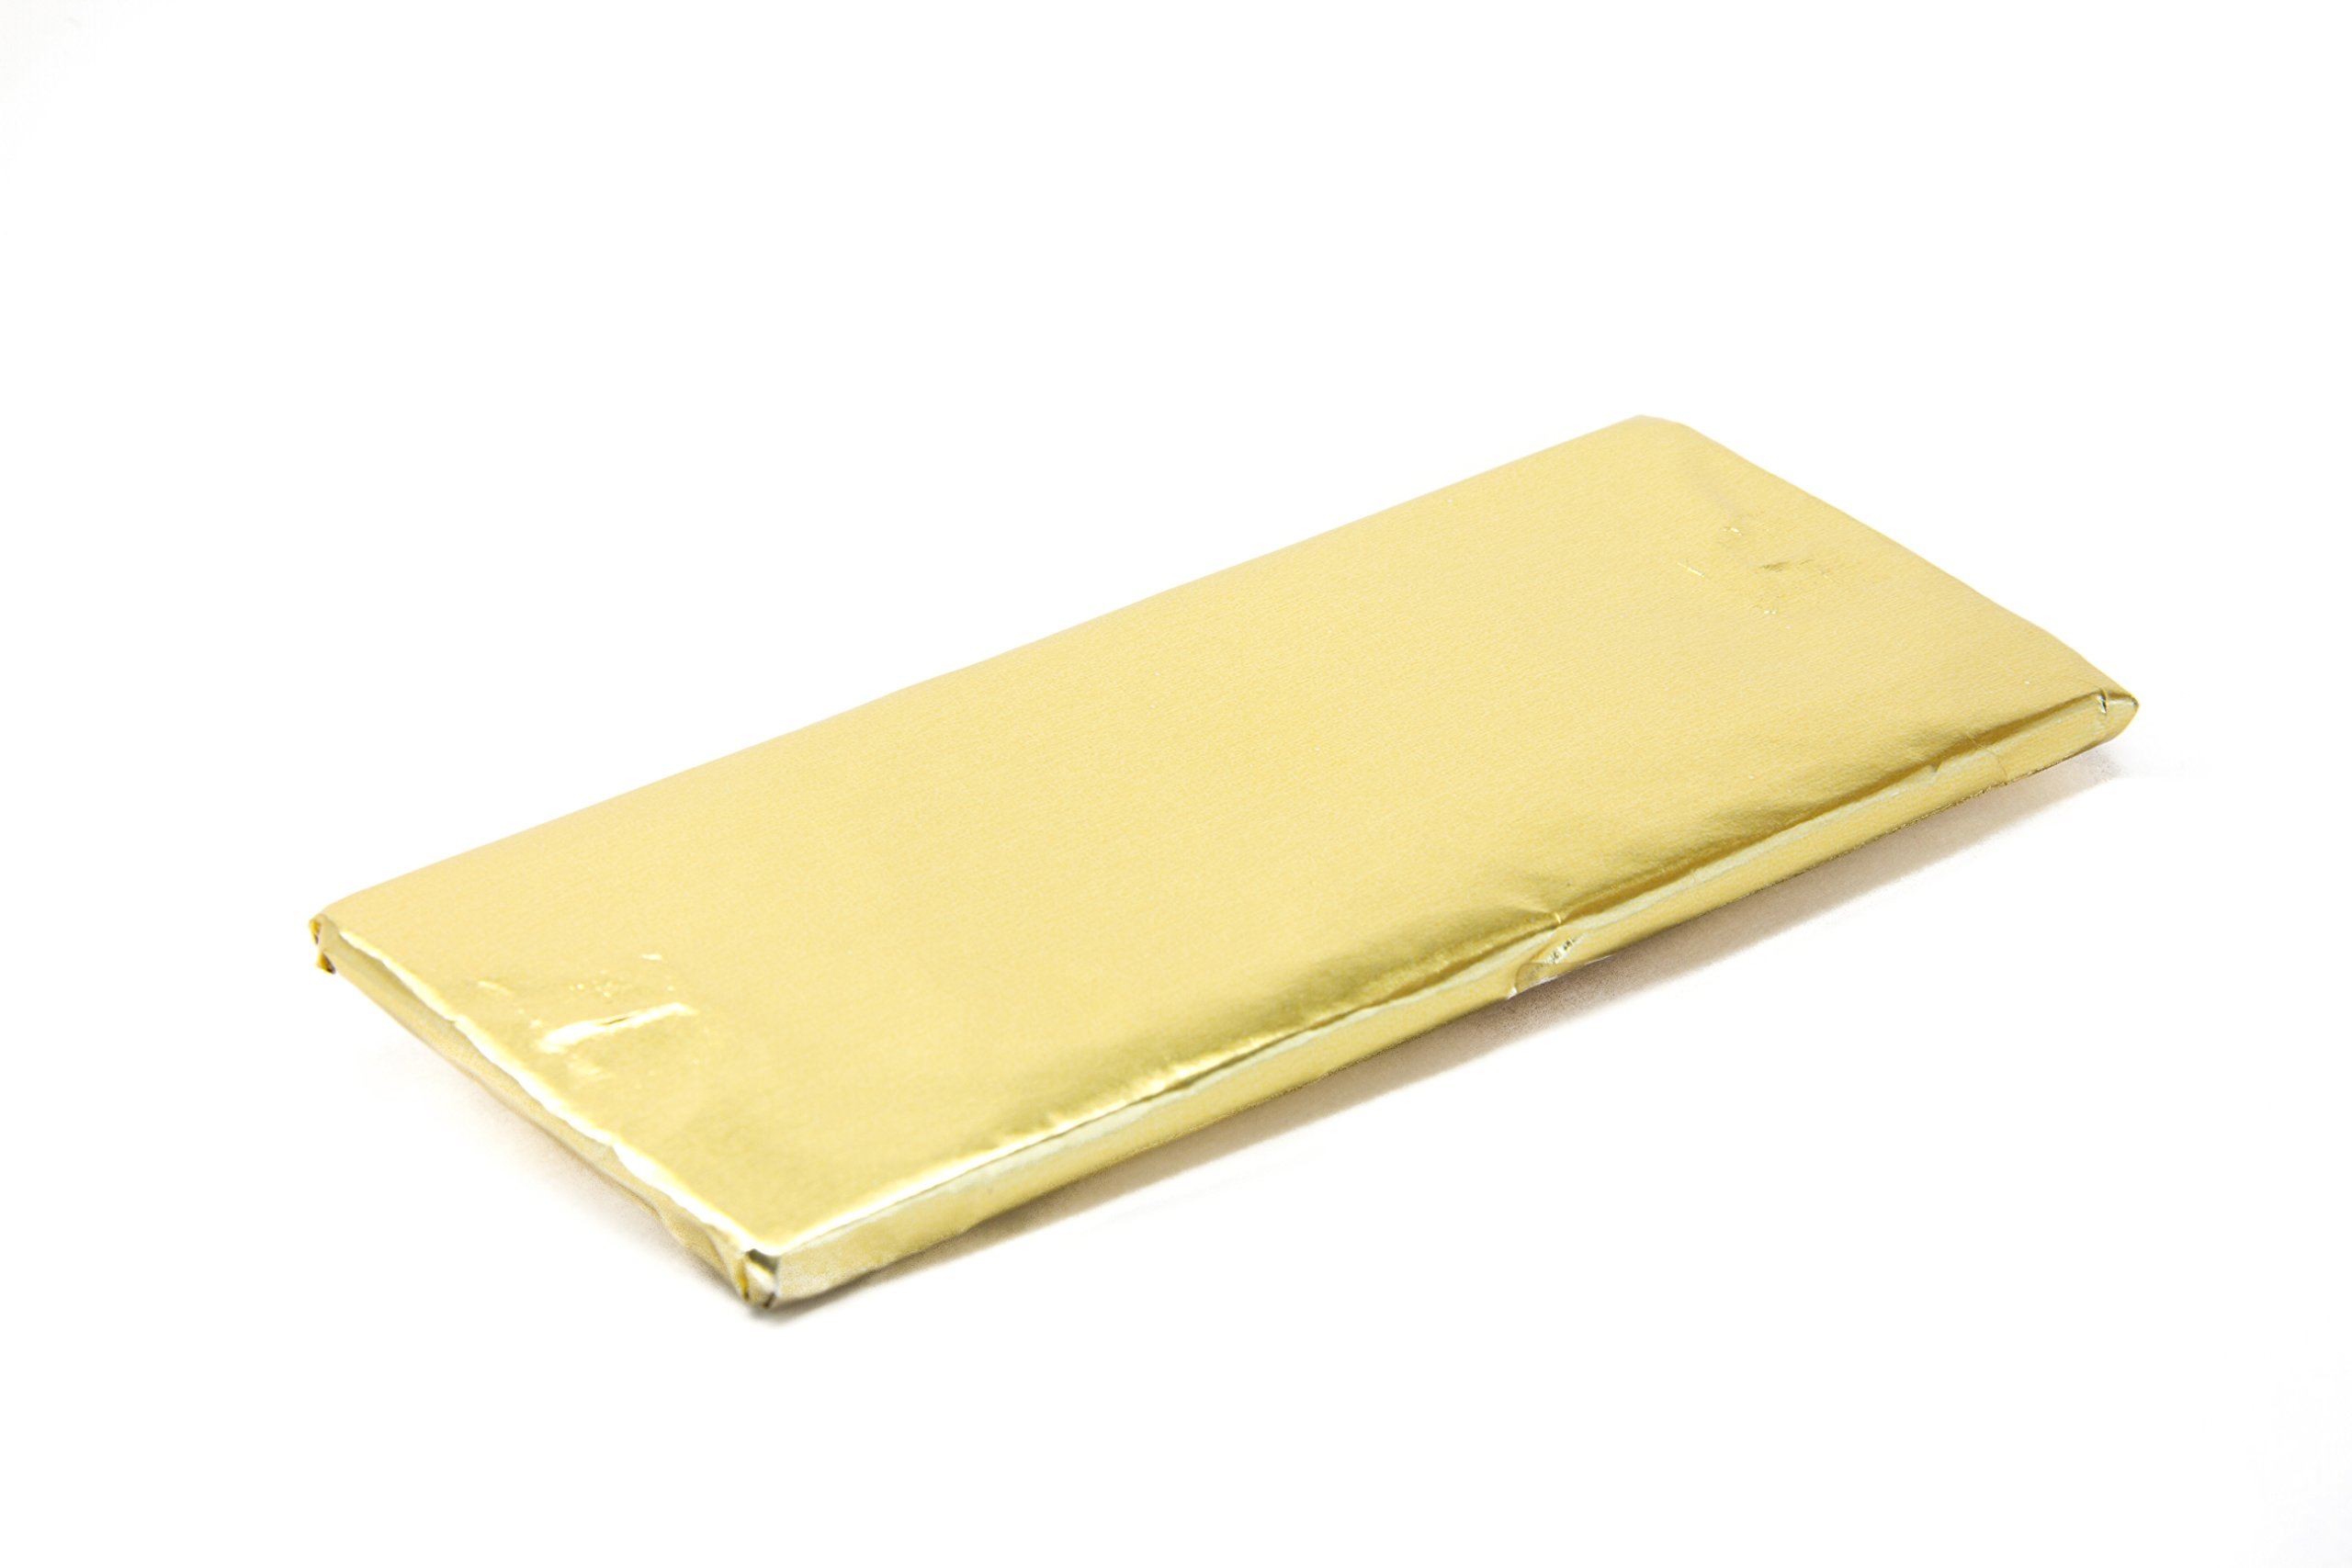 Foil Wrapper Gold 6'' X 7.5'' For Hershey Bar Over Wrap pack of 100